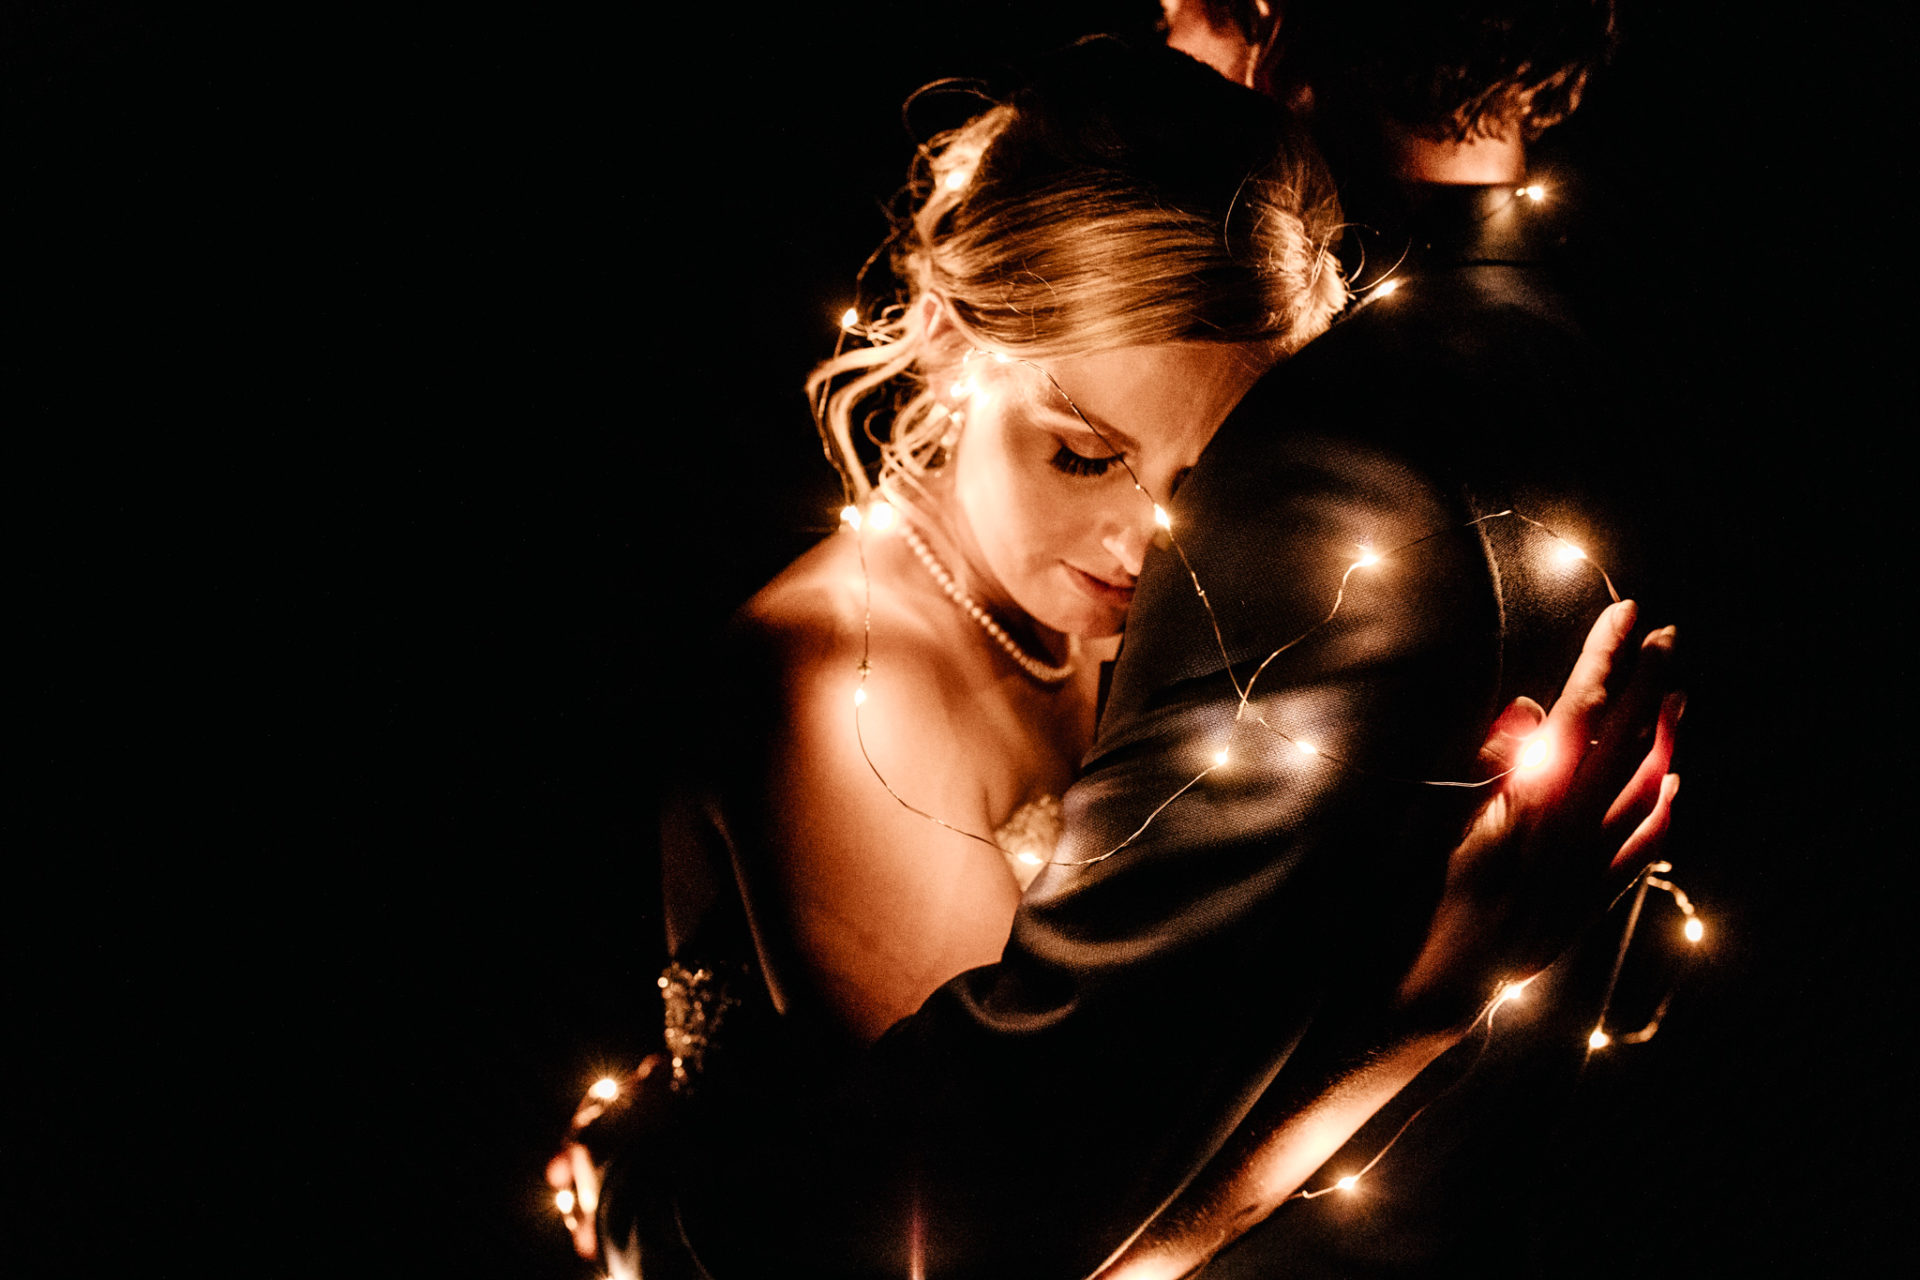 backyard-wedding-australia-melbourne-bride-night-portrait-bride-and-groom-with-fairy-lights